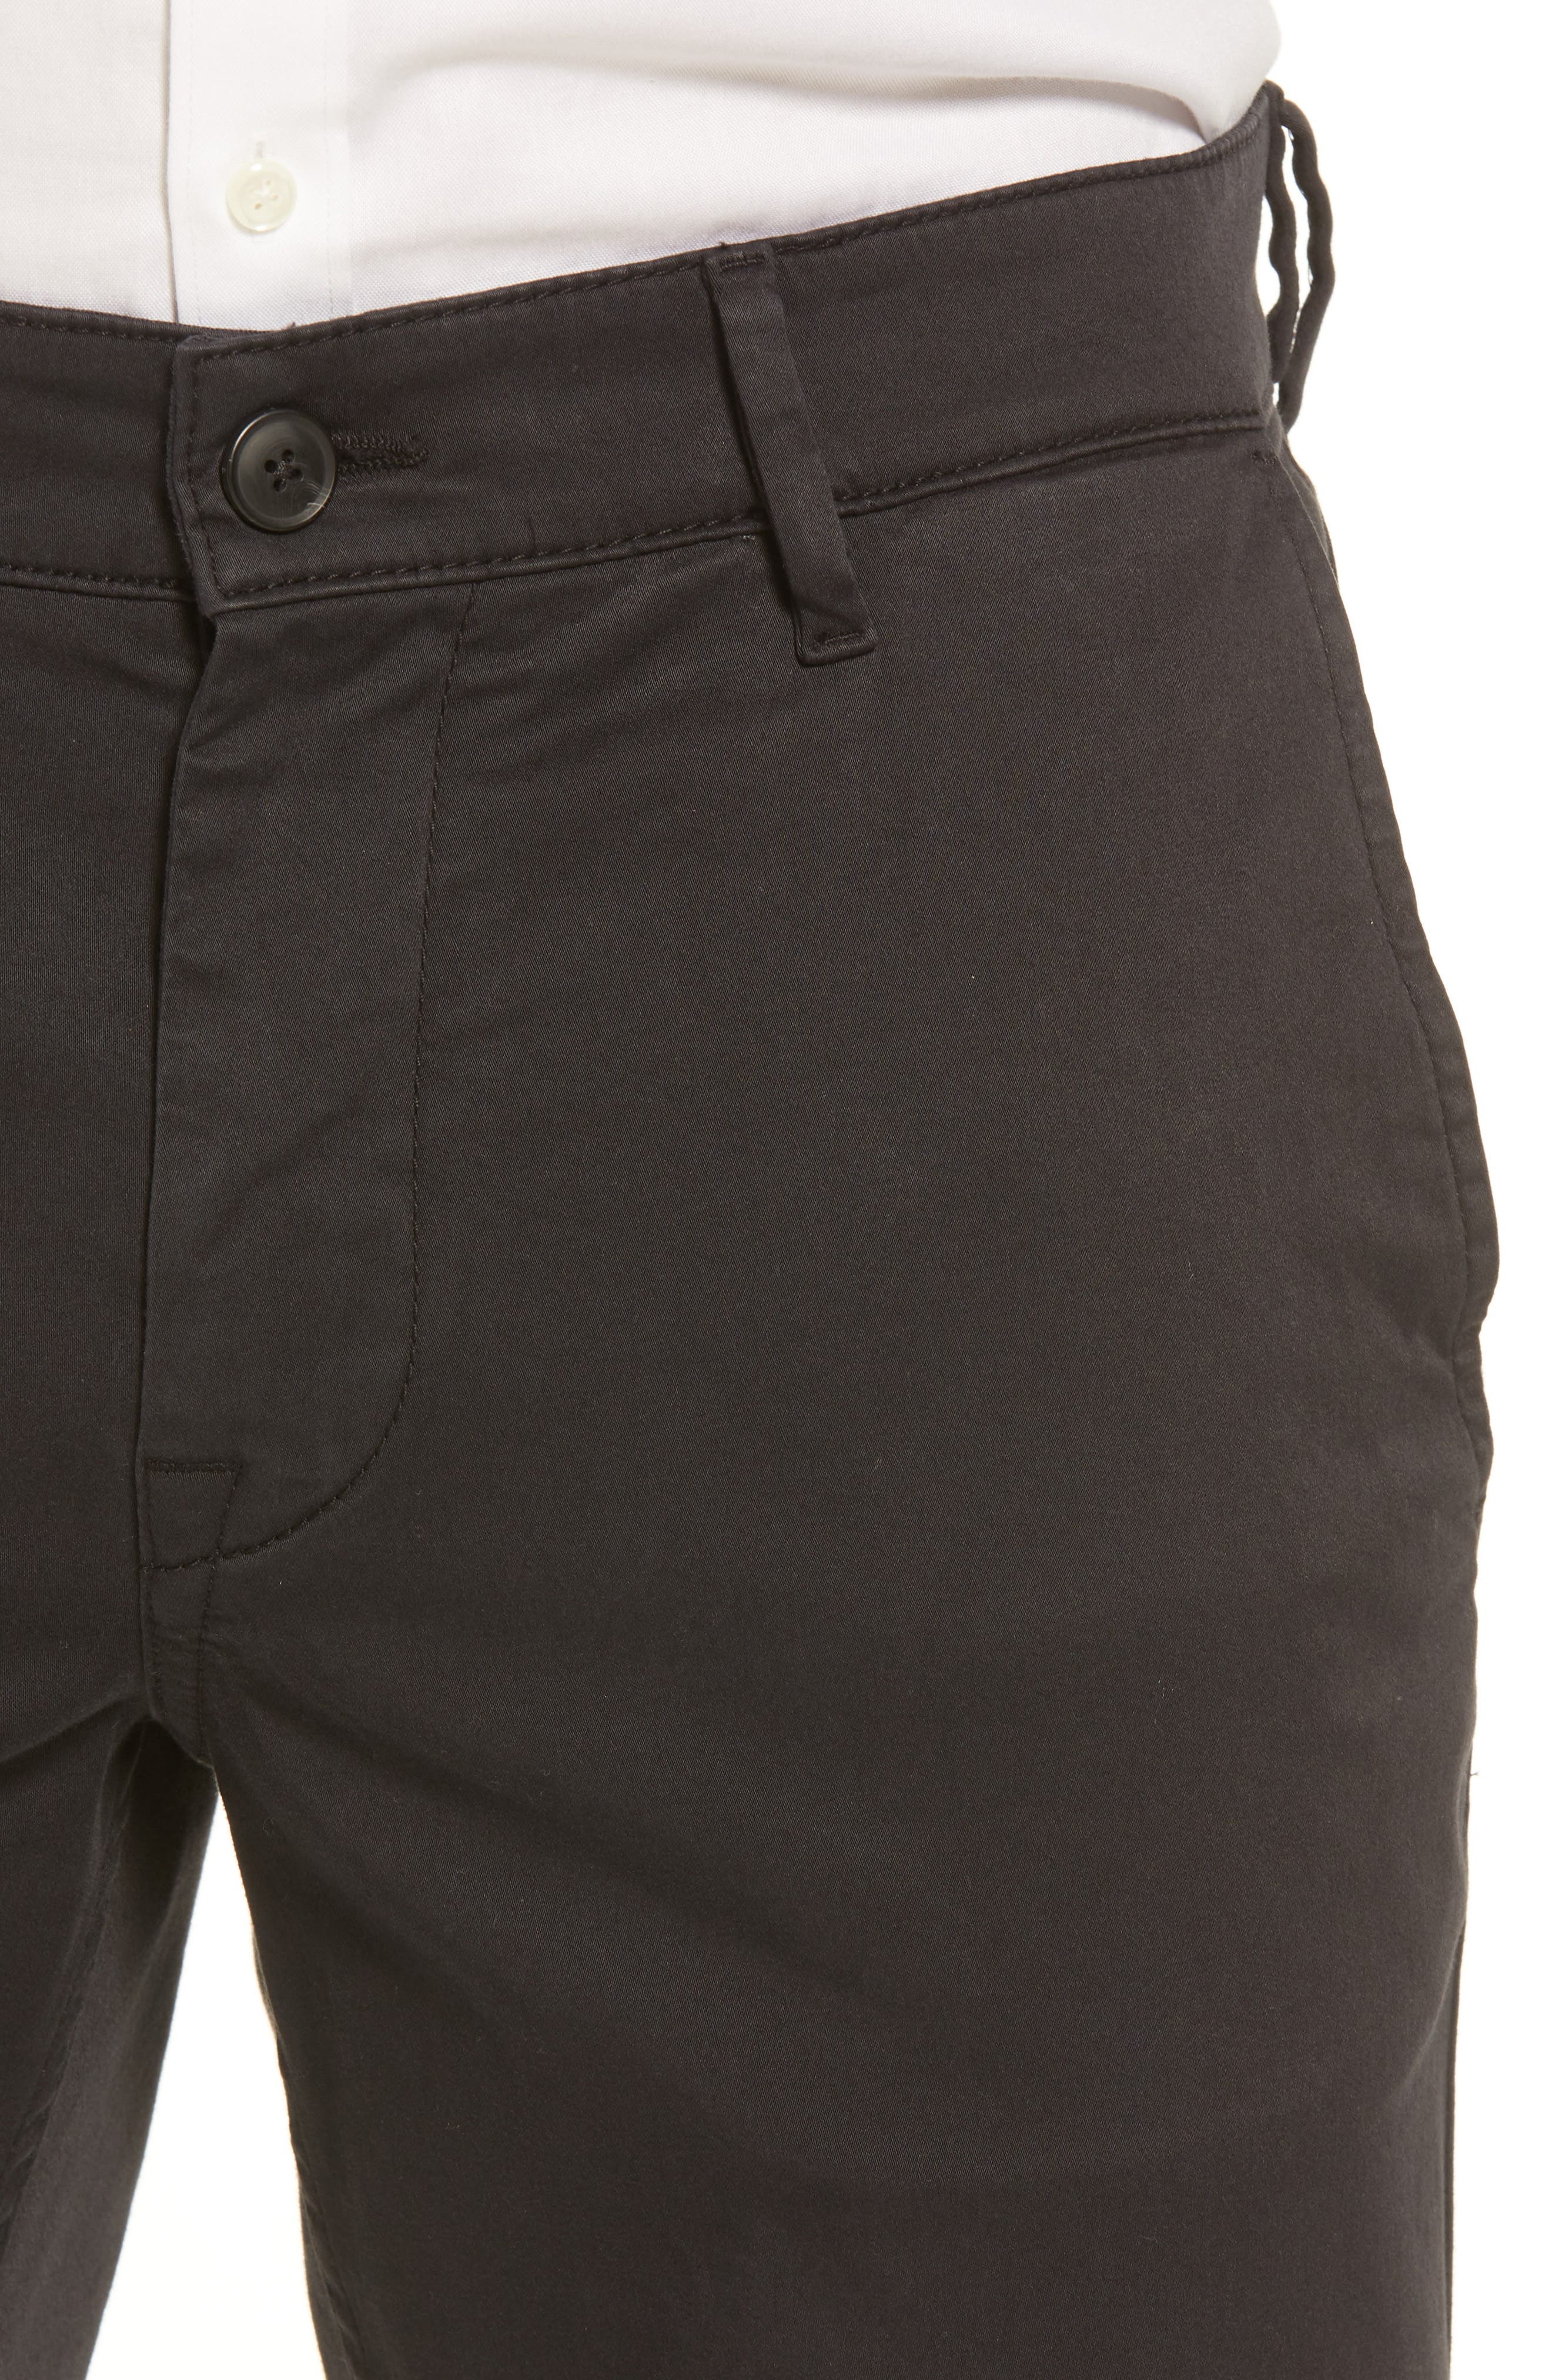 Stretch Chino Pants,                             Alternate thumbnail 4, color,                             BLACK